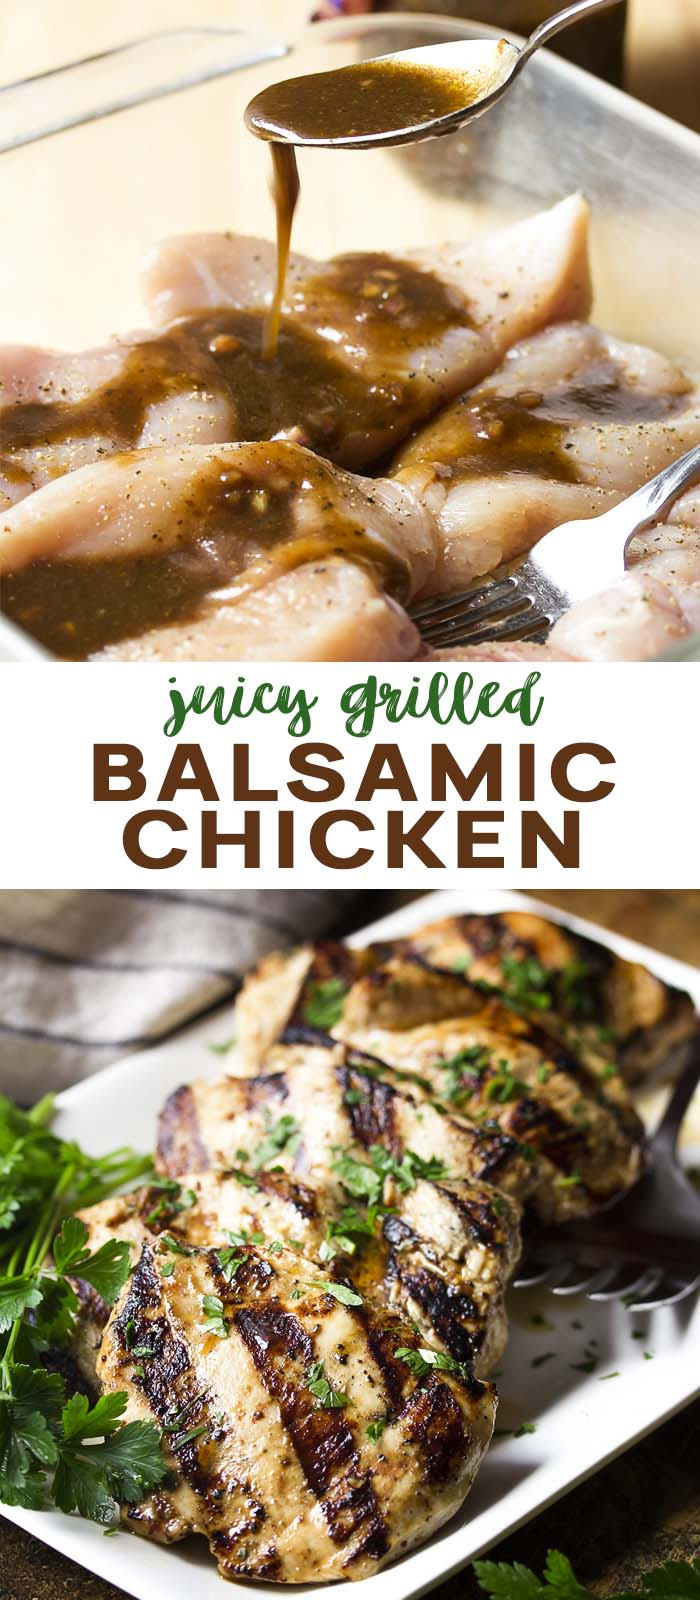 Chicken breast shown marinating and then grilled with text overlay - Balsamic Chicken.